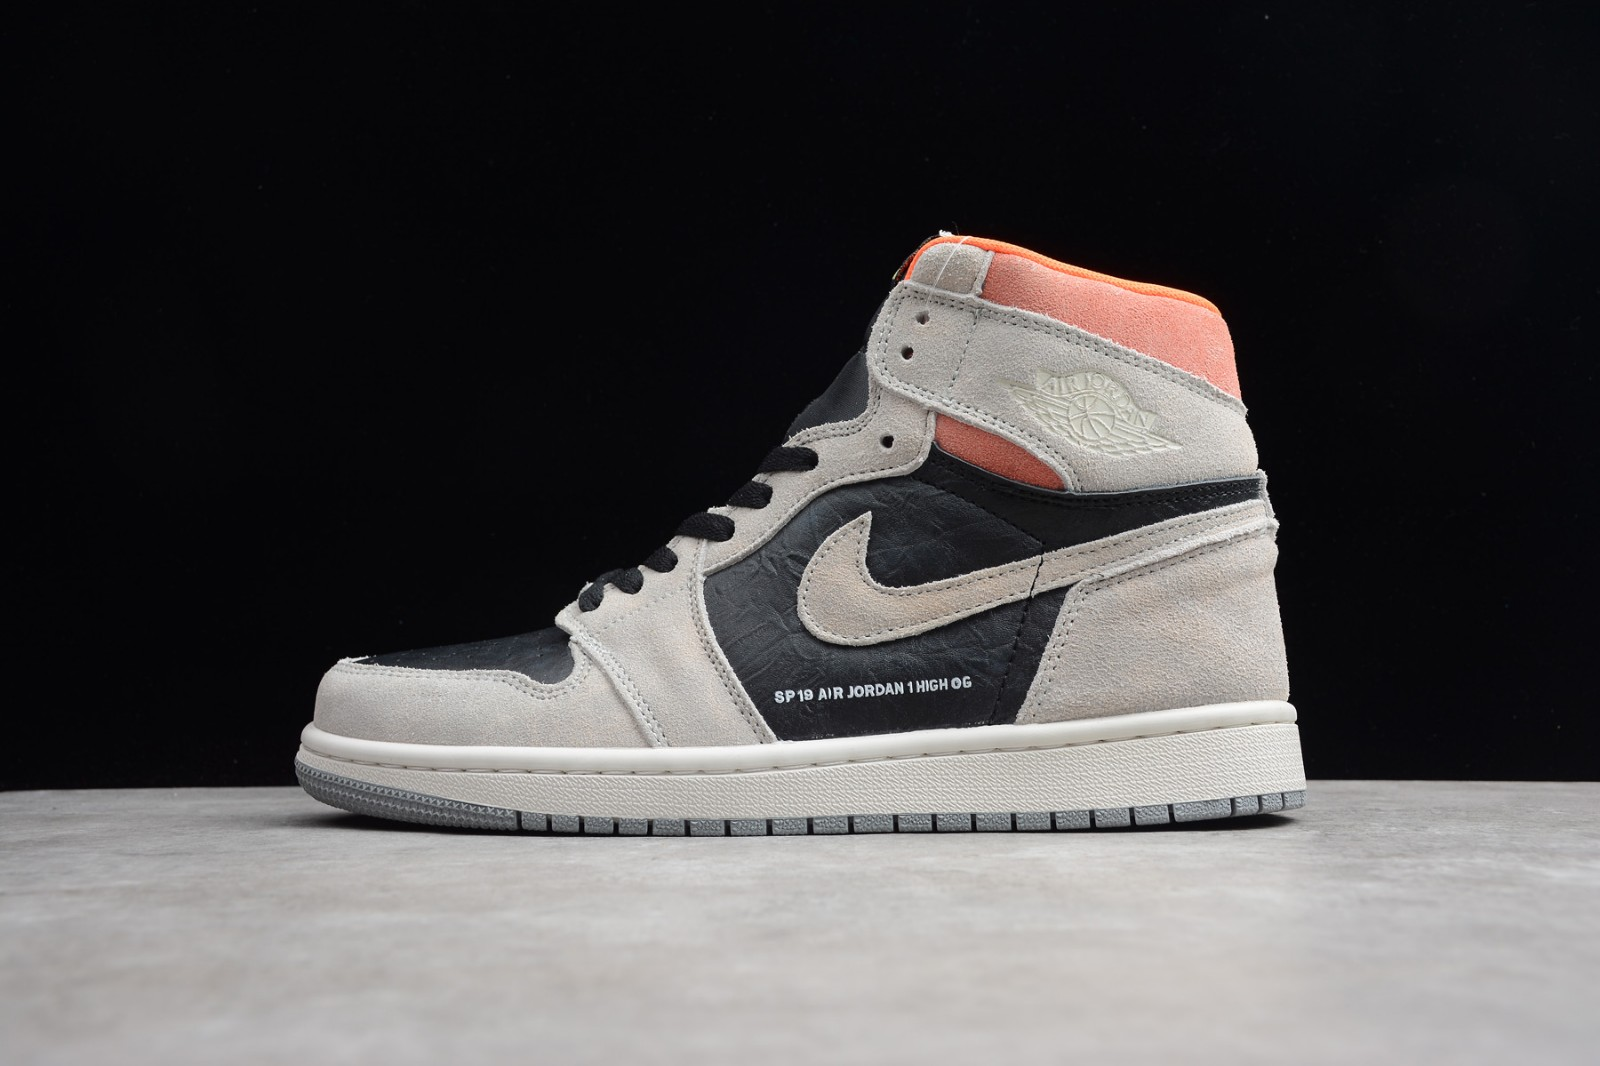 san francisco c4452 c37c5 Prev Nike Air Jordan 1 Retro High OG Neutral Grey Hyper Crimson 555088-018